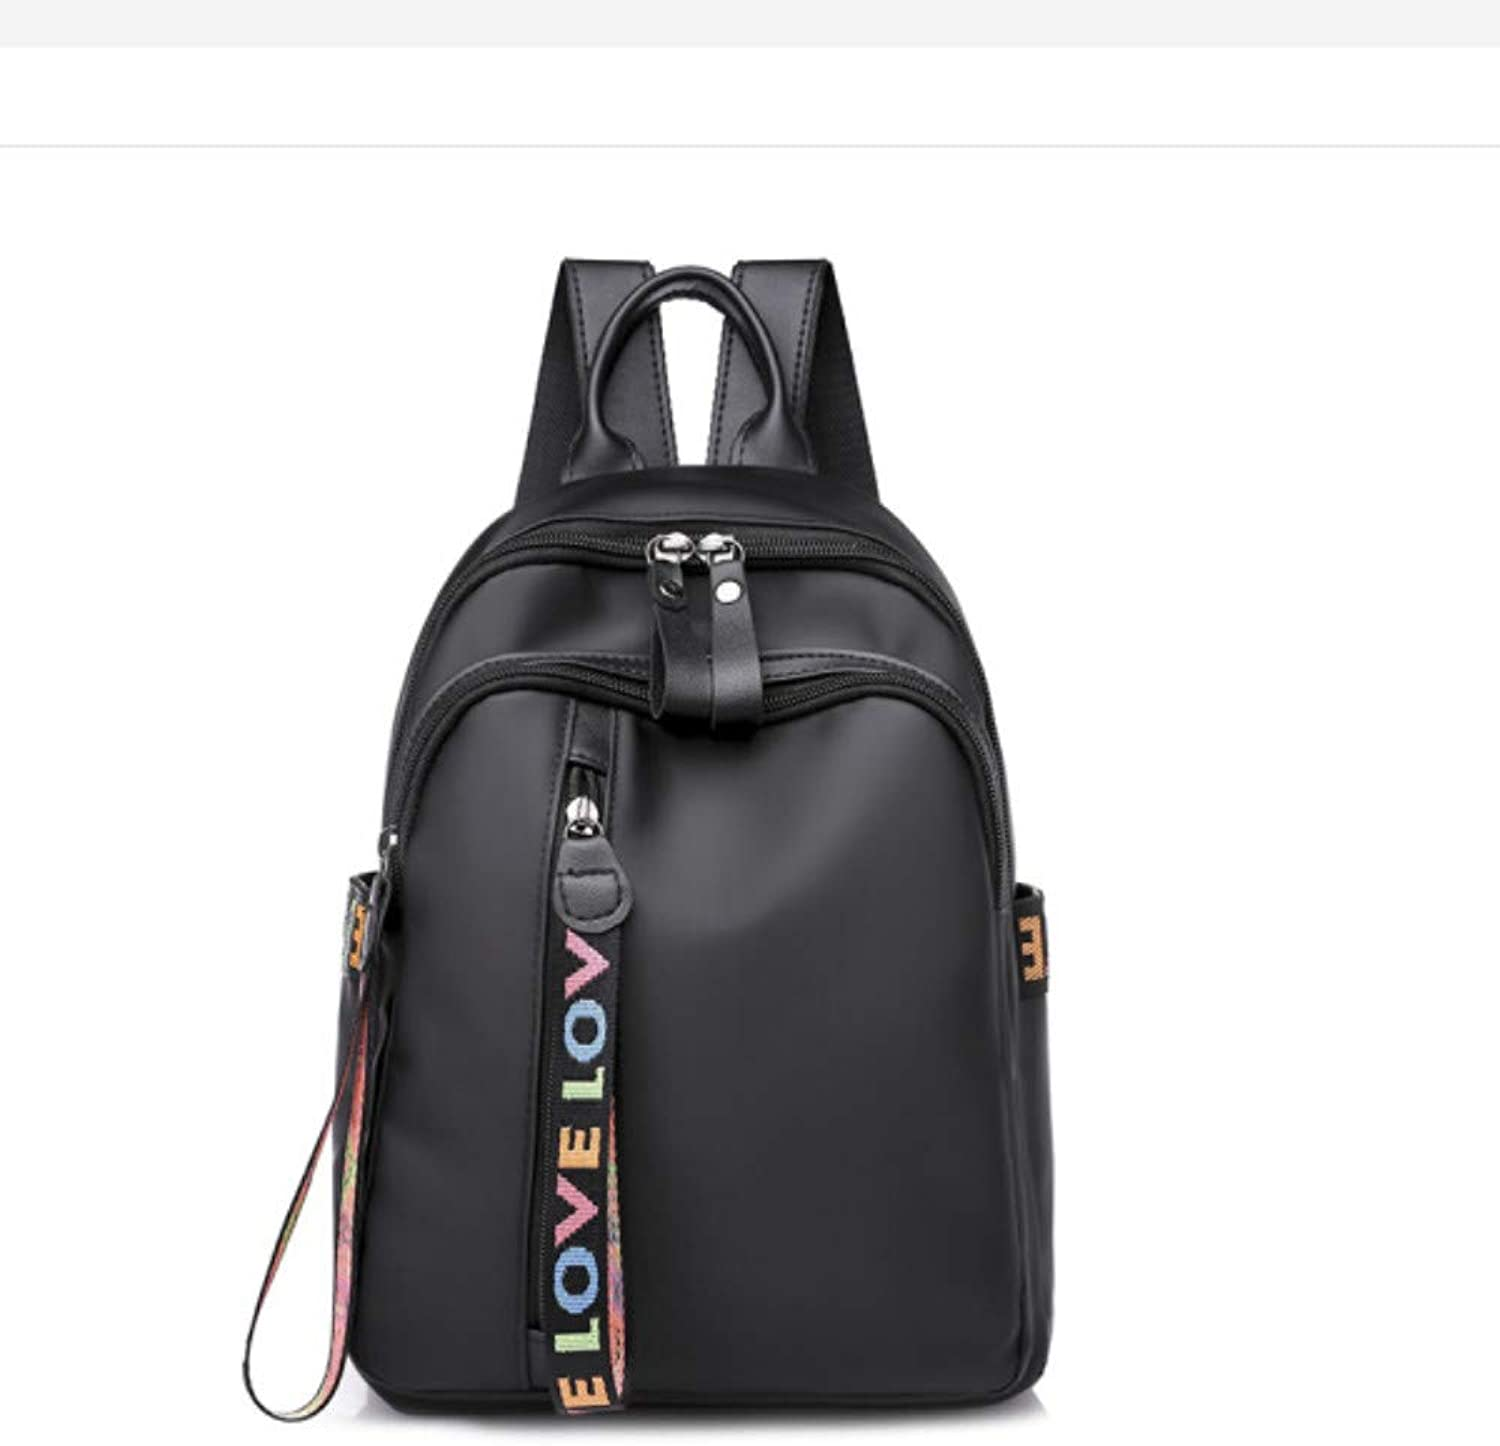 Bag Lady Backpack Trend Simple Backpack Female Fashion Student Bag Oxford Cloth